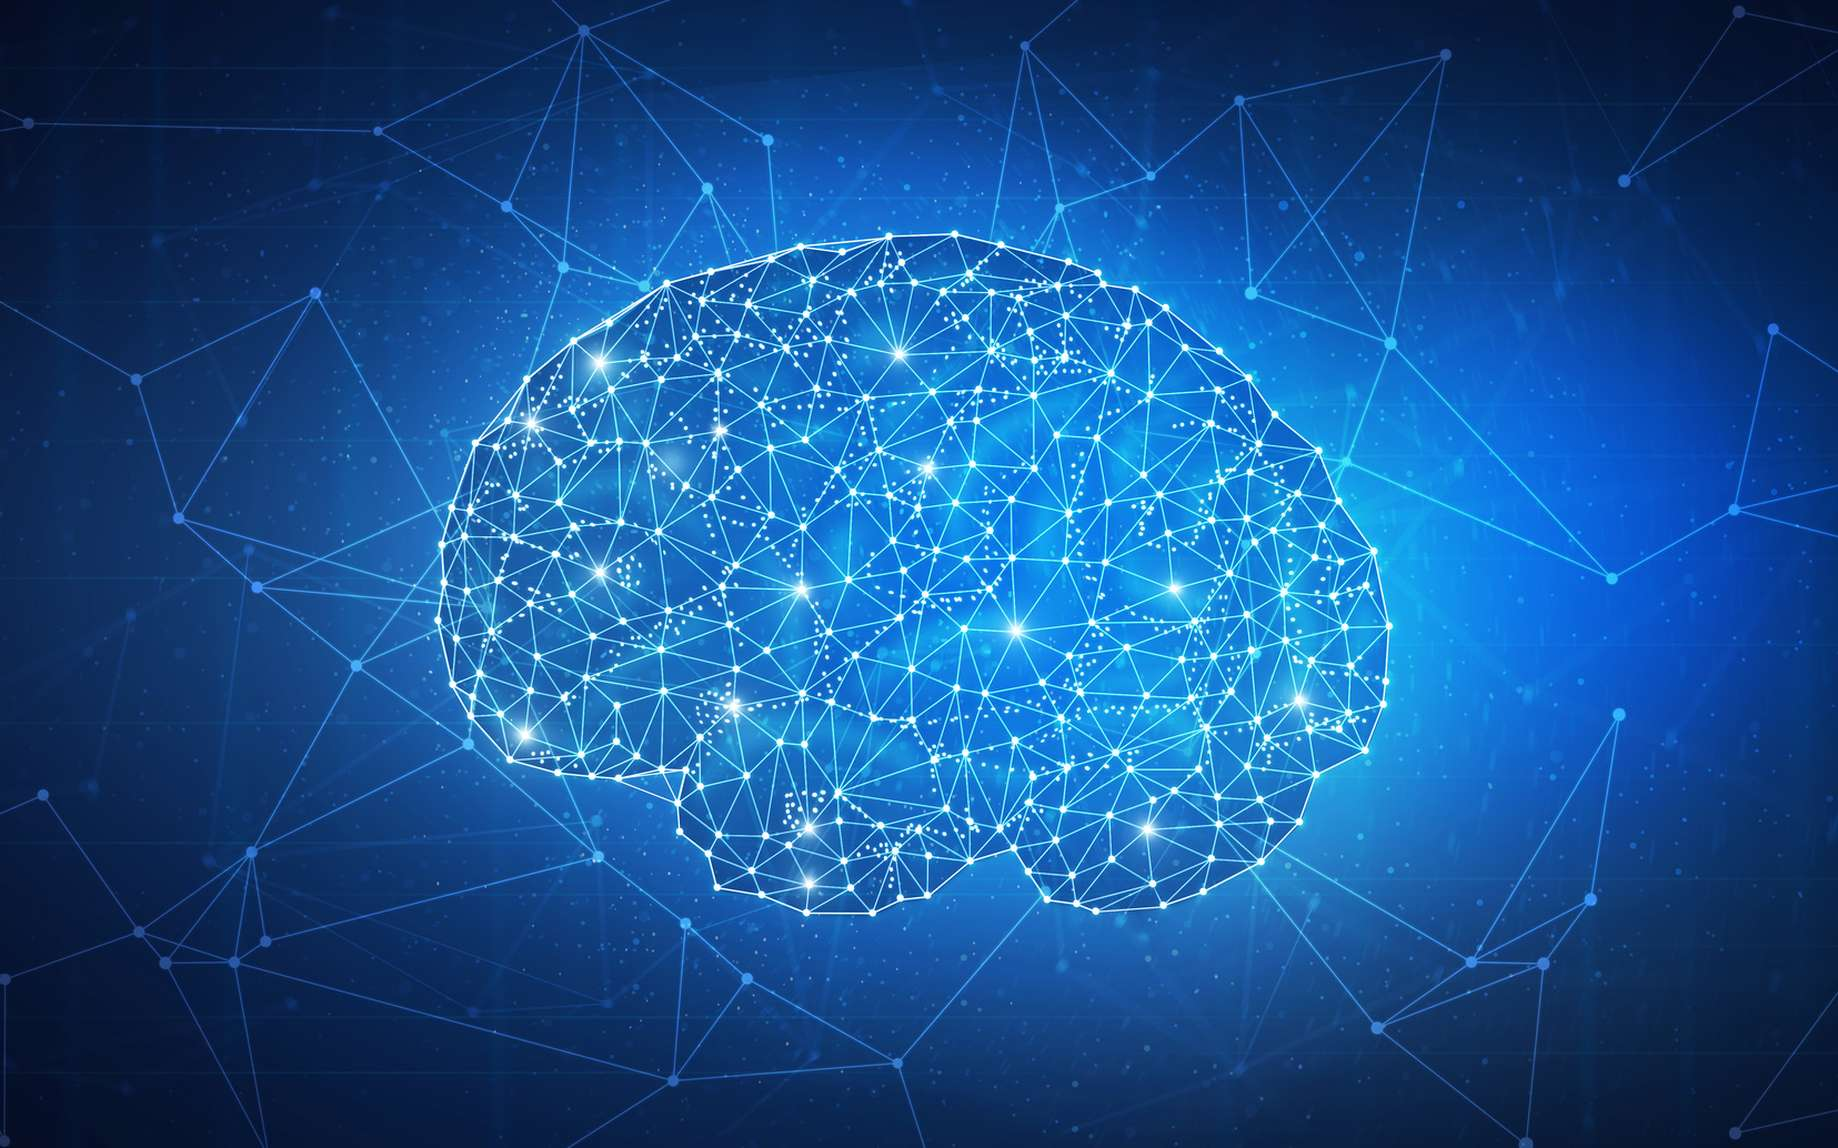 Le deep Learning, comment ça marche ? © VIGE.co, Fotolia.com